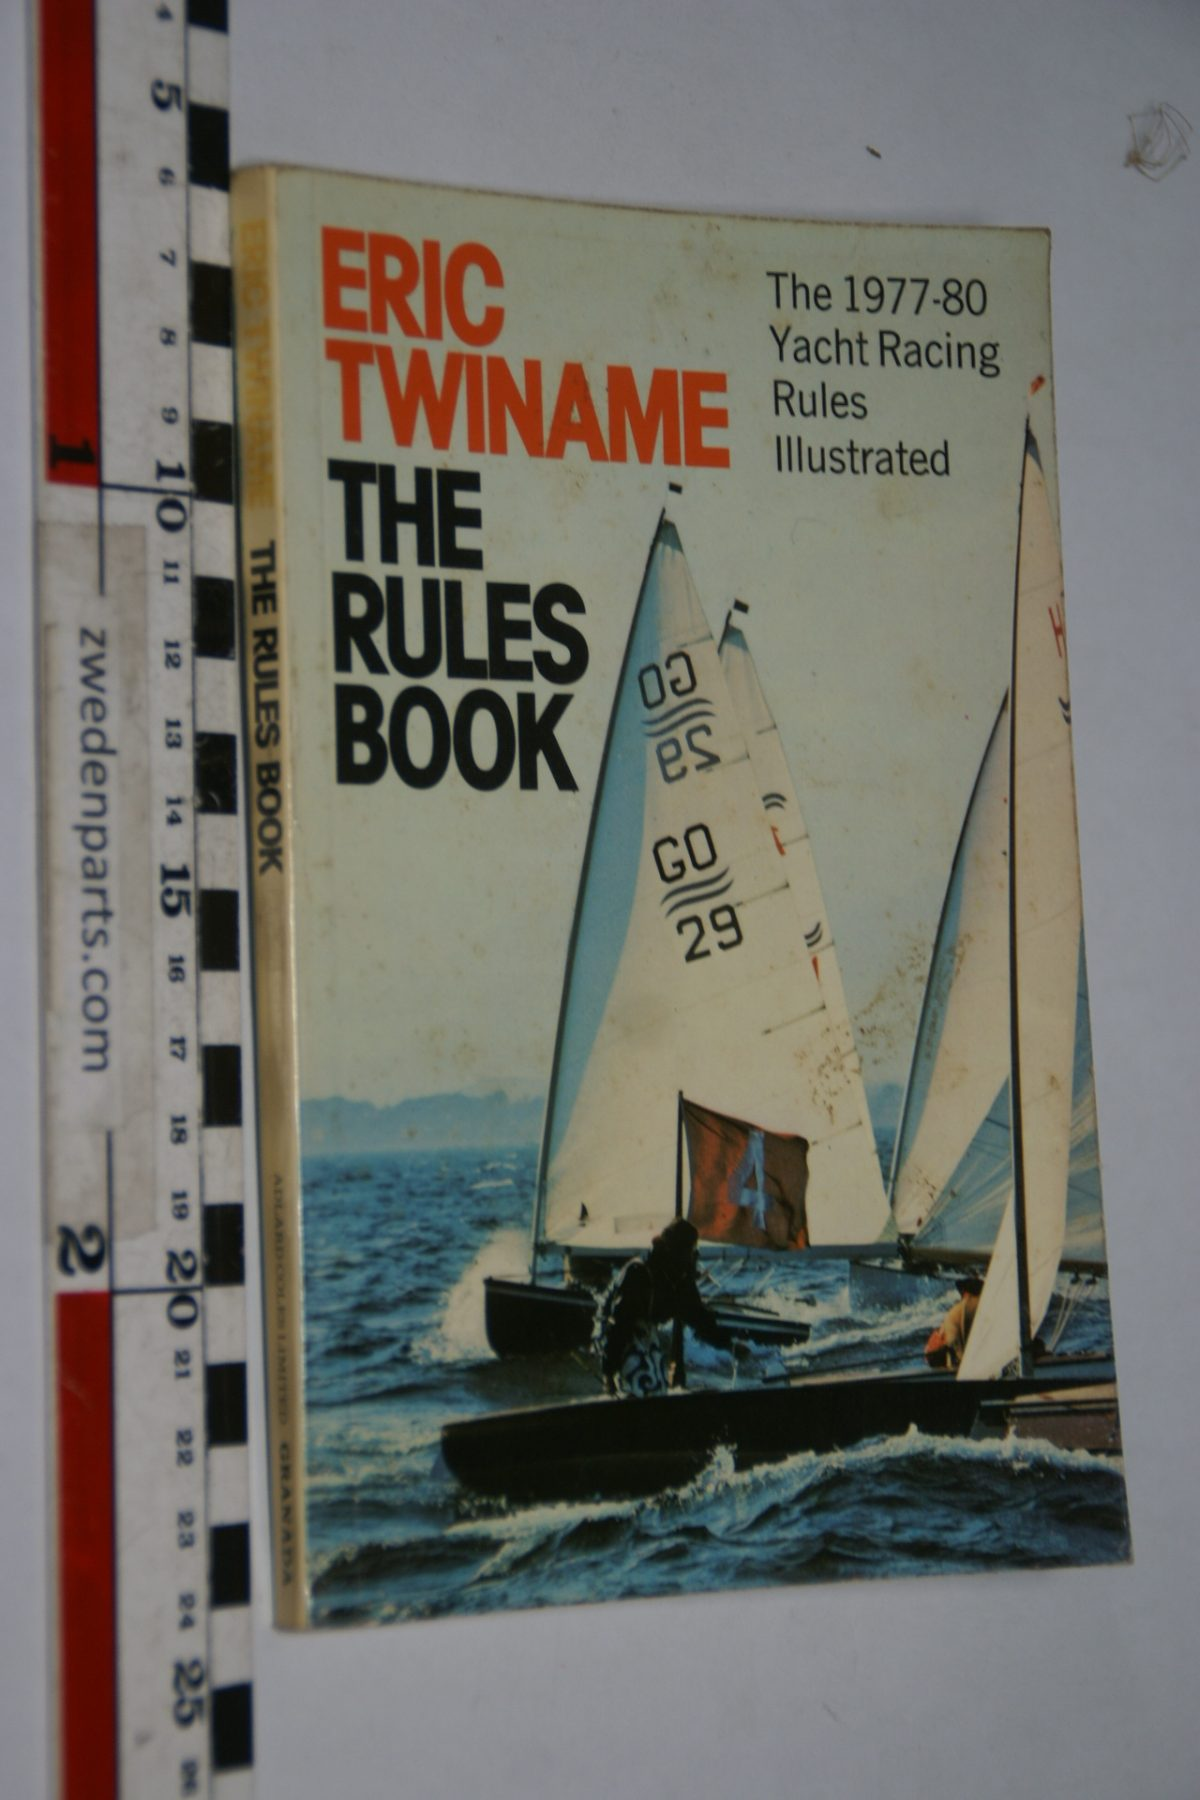 DSC06932 1977 boek The Rules Book by Eric Twiname ISBN 0229115799